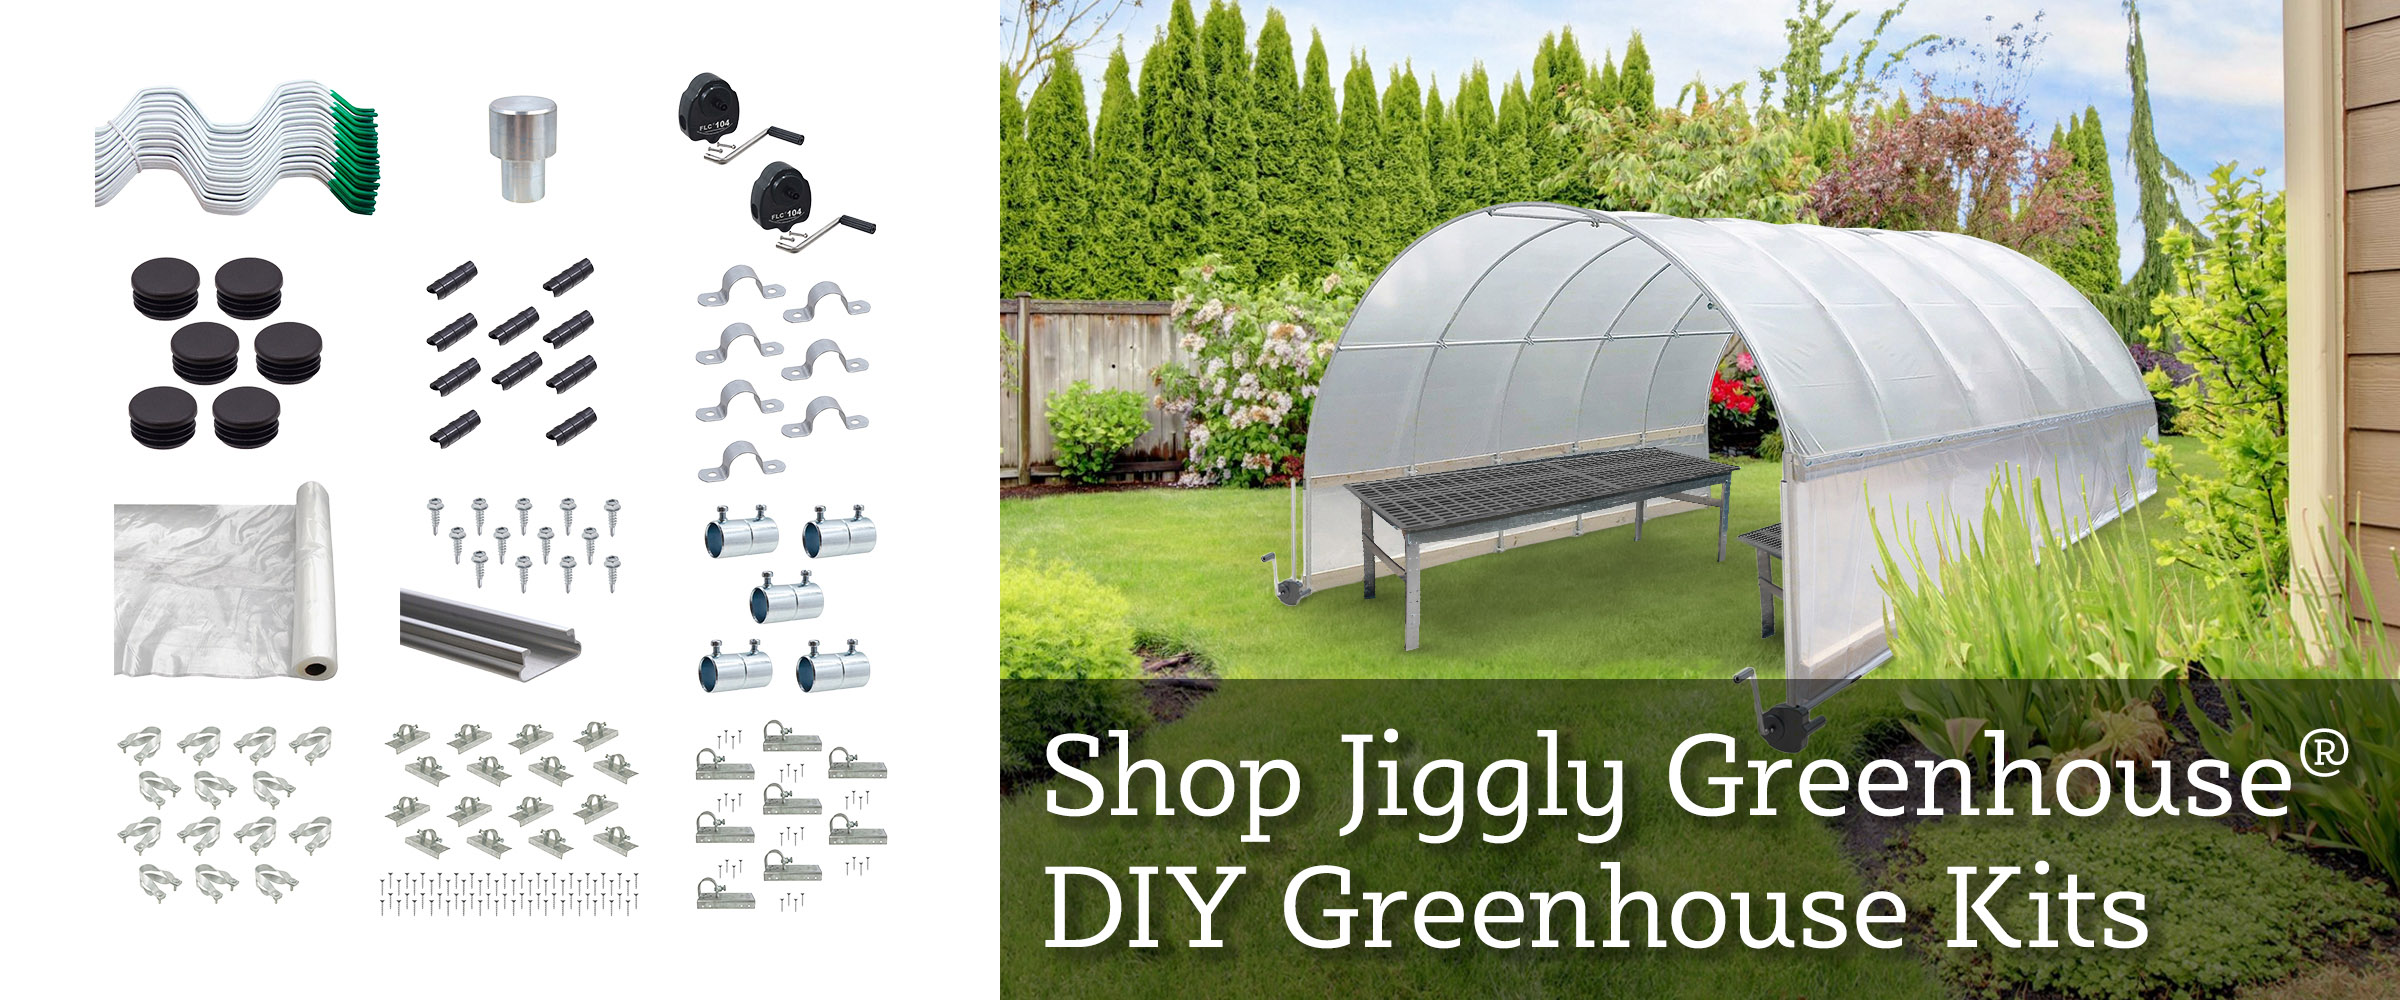 Check Out Our Jiggly Greenhouse DIY Greenhouse Kits!